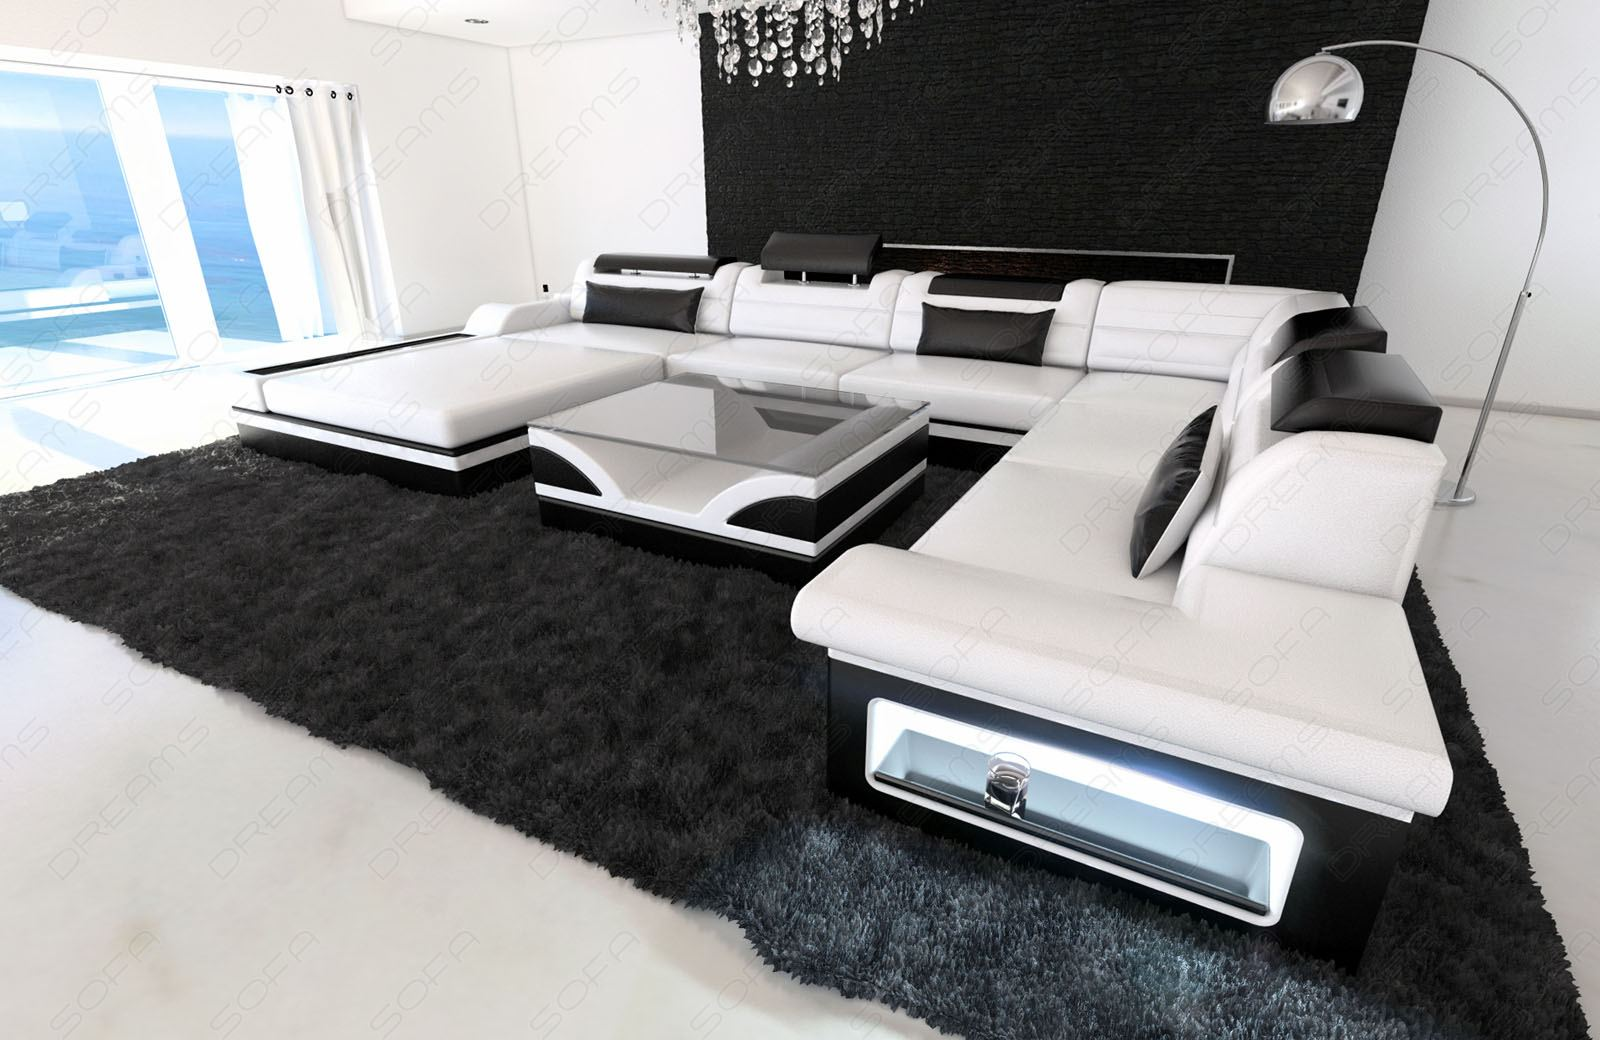 Couch Xxl Design Sectional Sofa Mezzo Xxl With Led Lights White Black